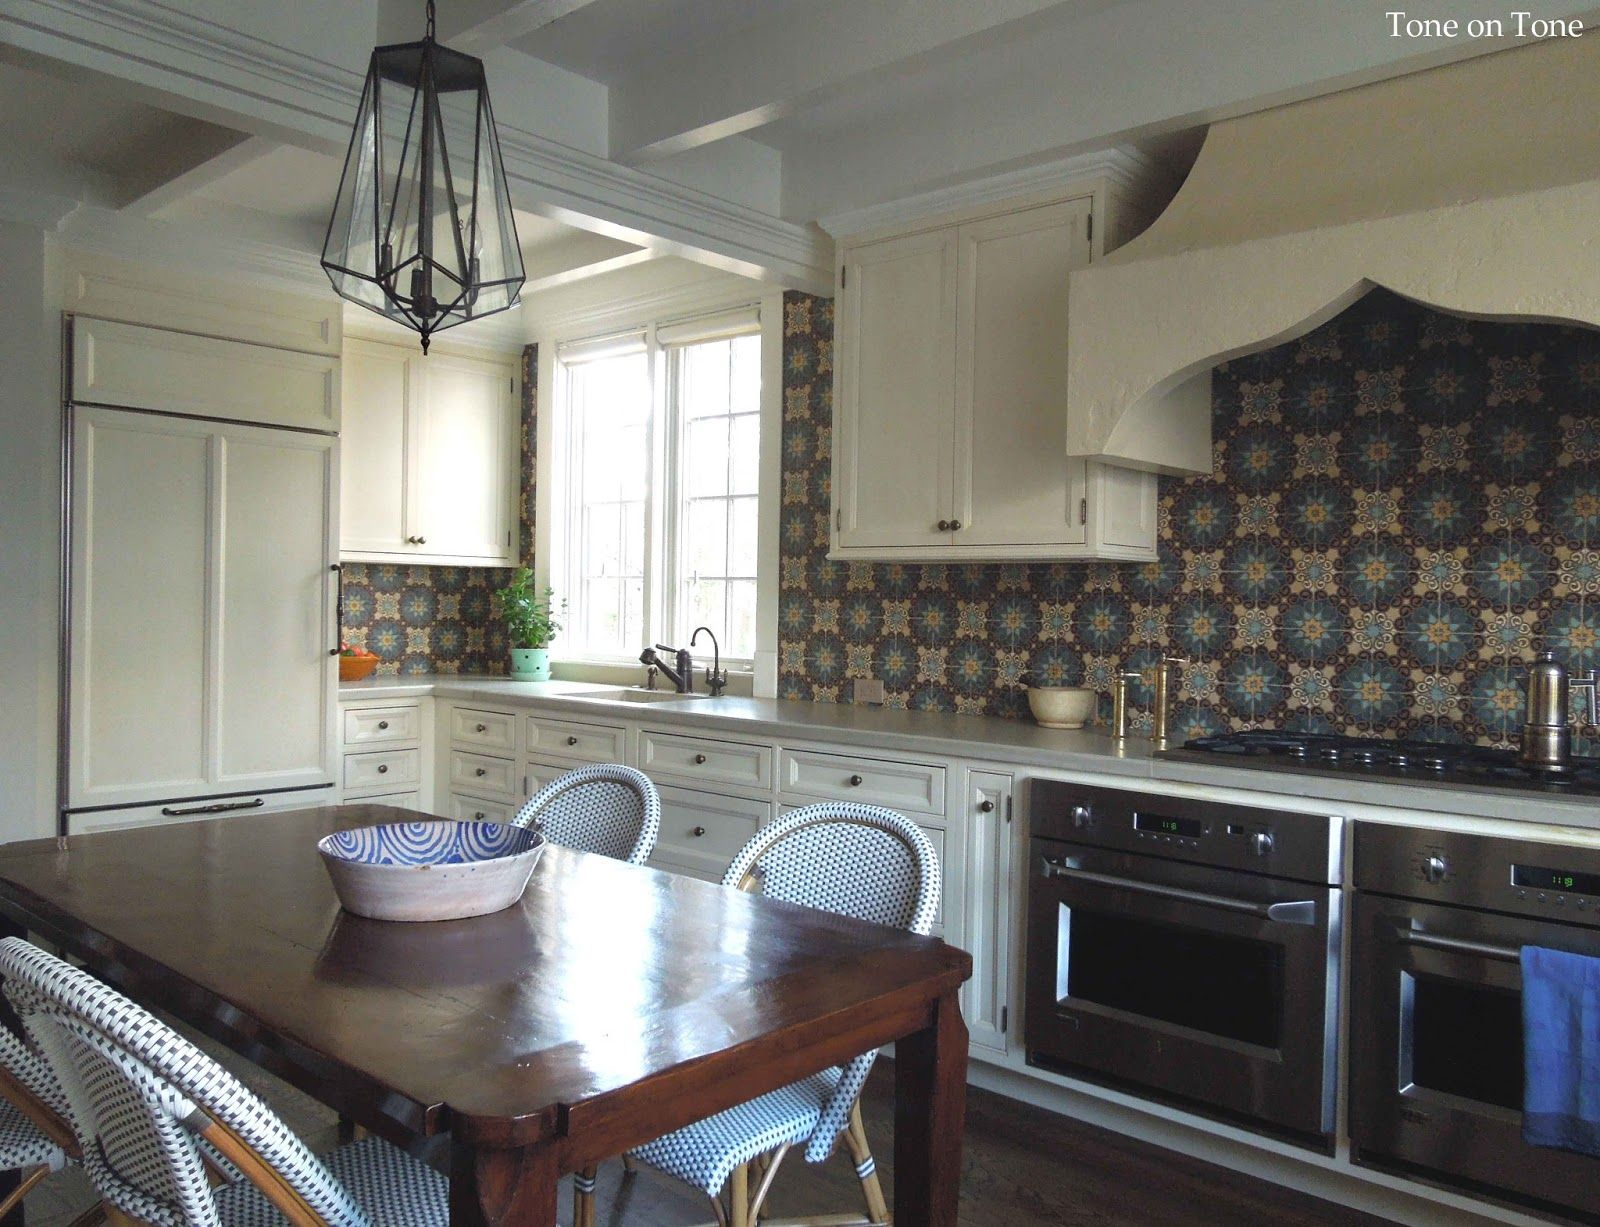 Uncategorized Lobkovich Kitchen Designs tone on morocco reflections and a kitchen lobkovich designs cabinetry mission tile west tiles available through renaissance tazi lantern